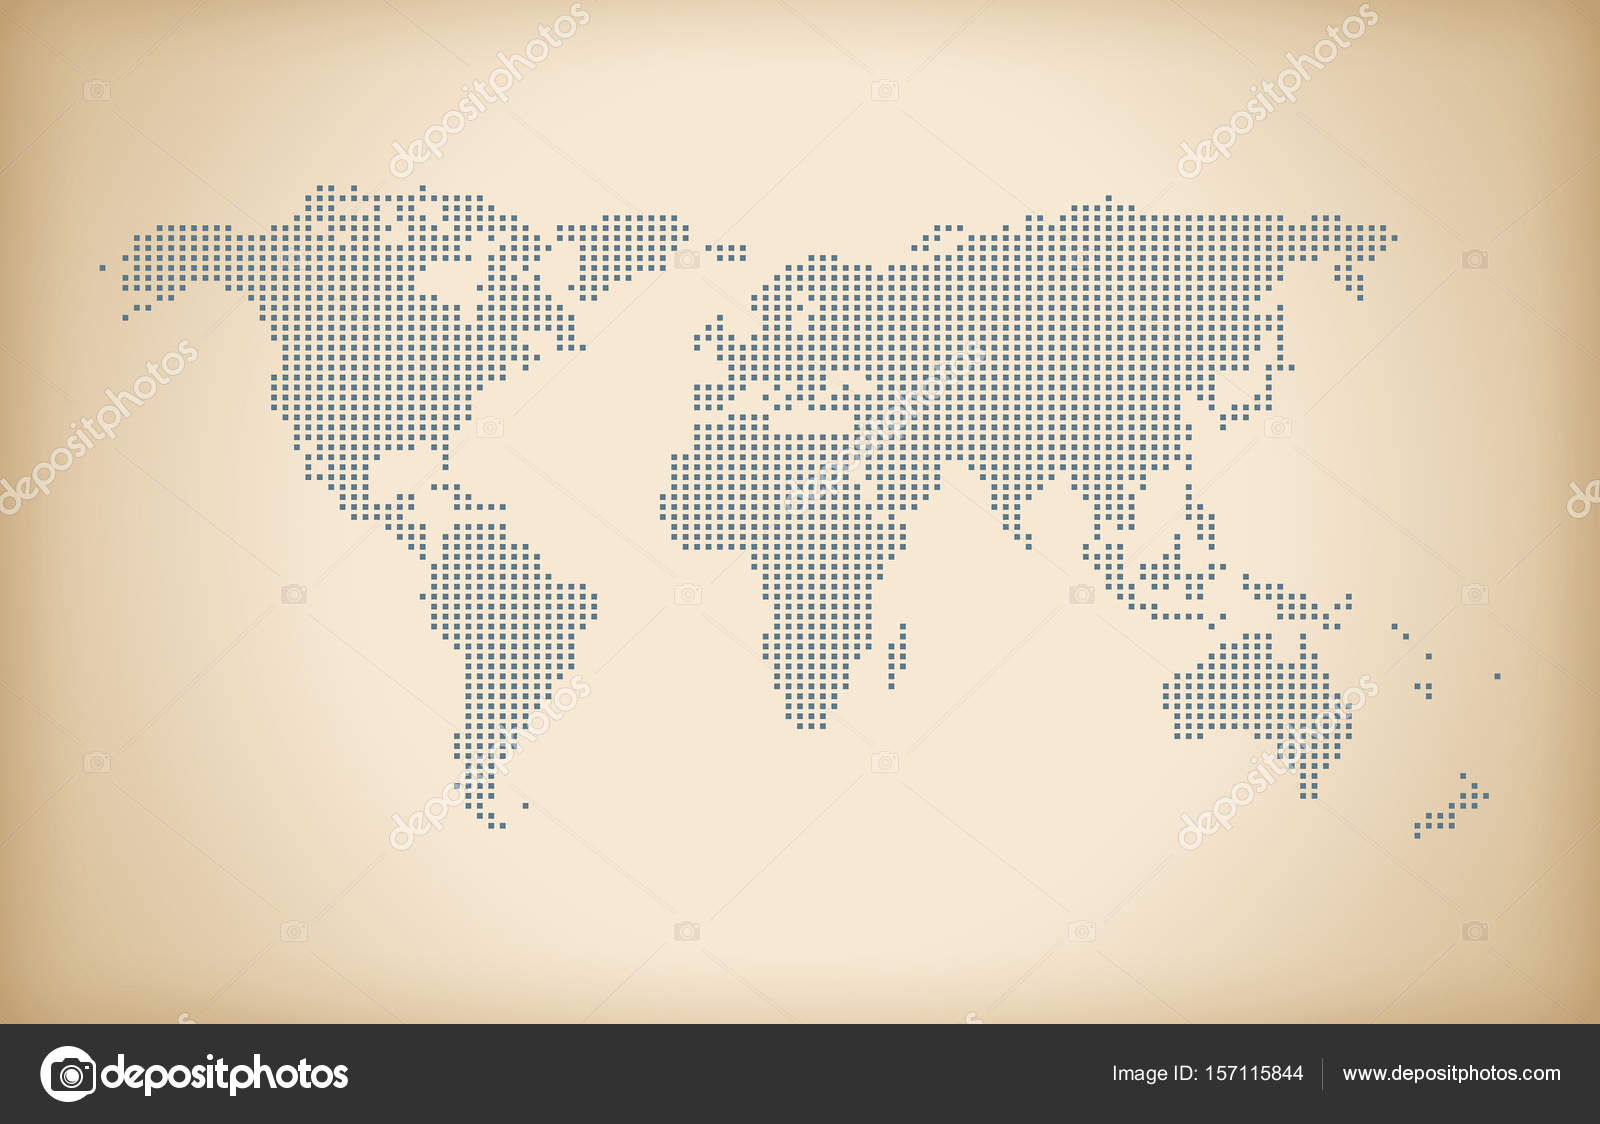 Vintage world map doted effects stock photo designworkz 157115844 digital world map with vintage effect high resolution photo by designworkz gumiabroncs Choice Image